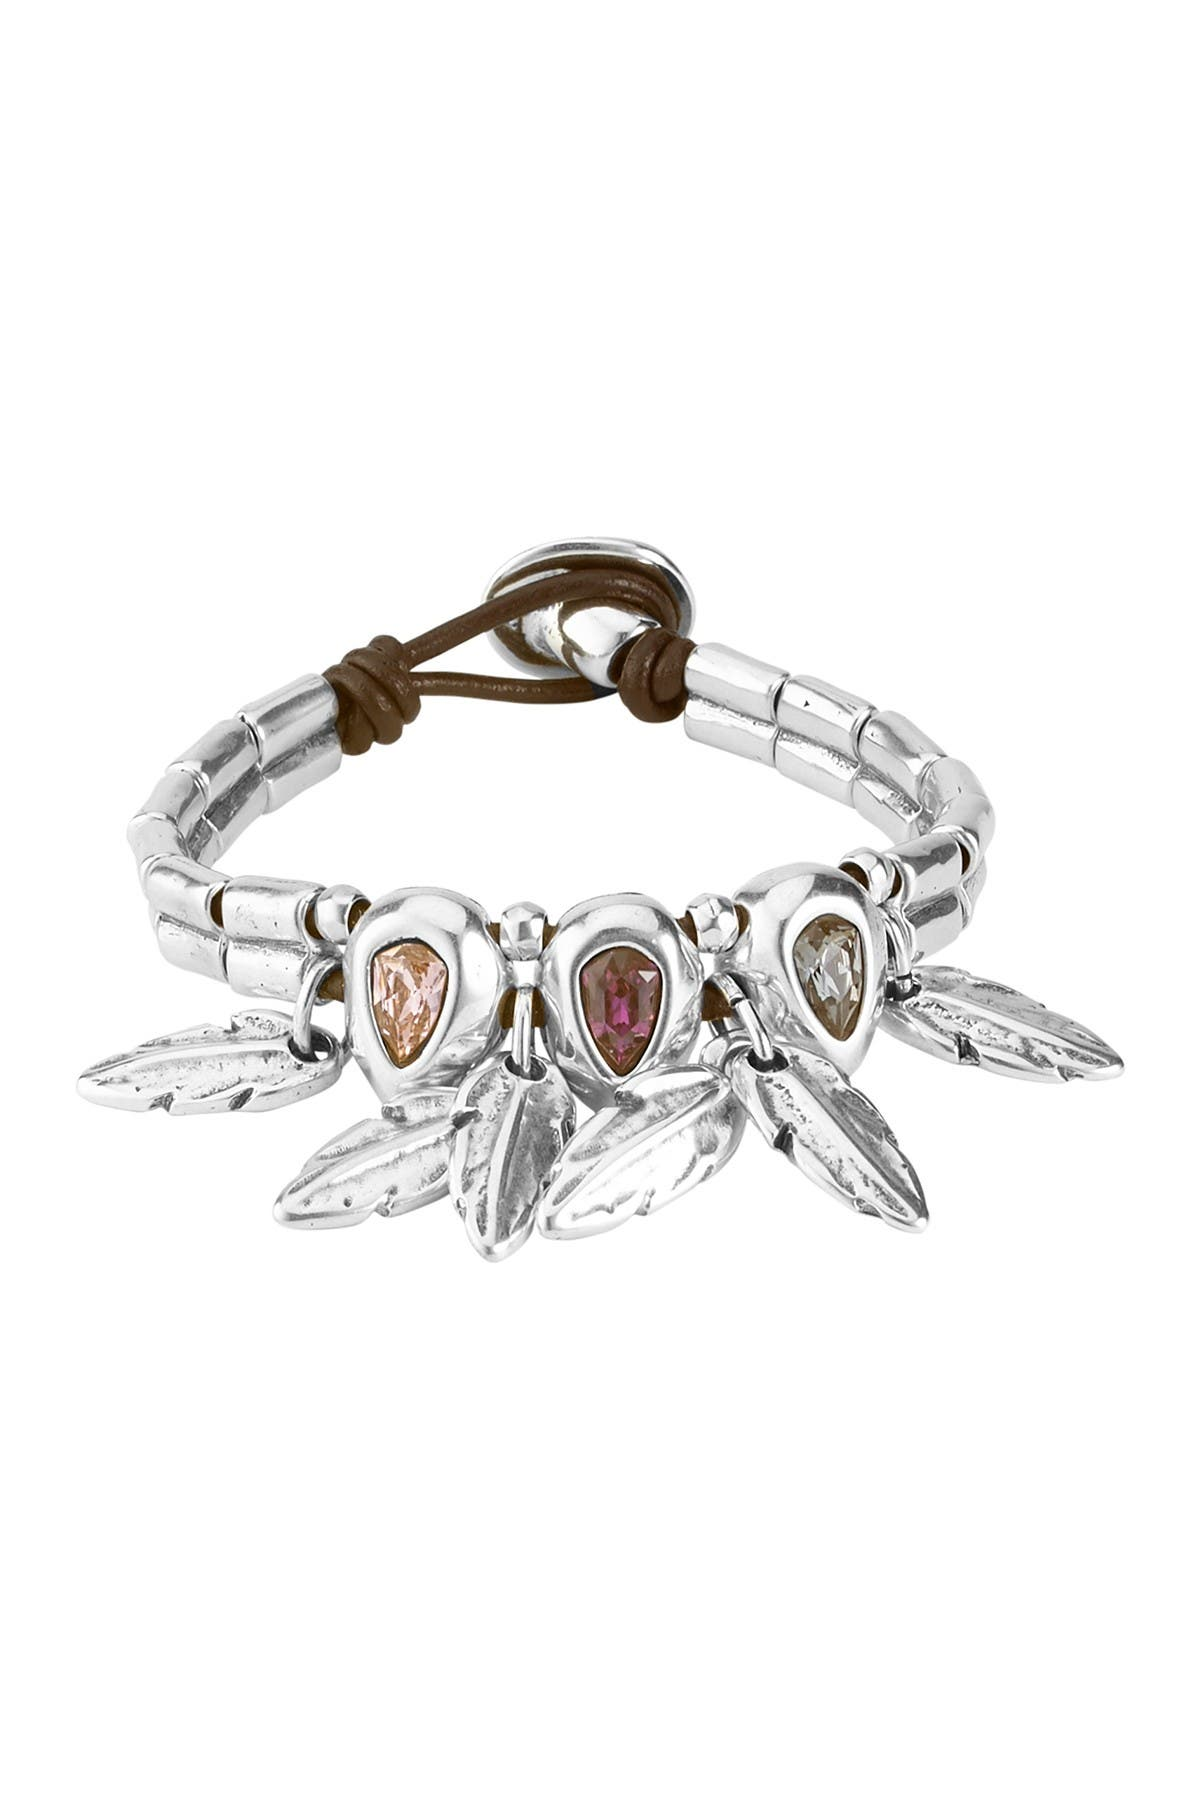 Image of Uno De 50 Picoteo Feather Charm Leather Bracelet